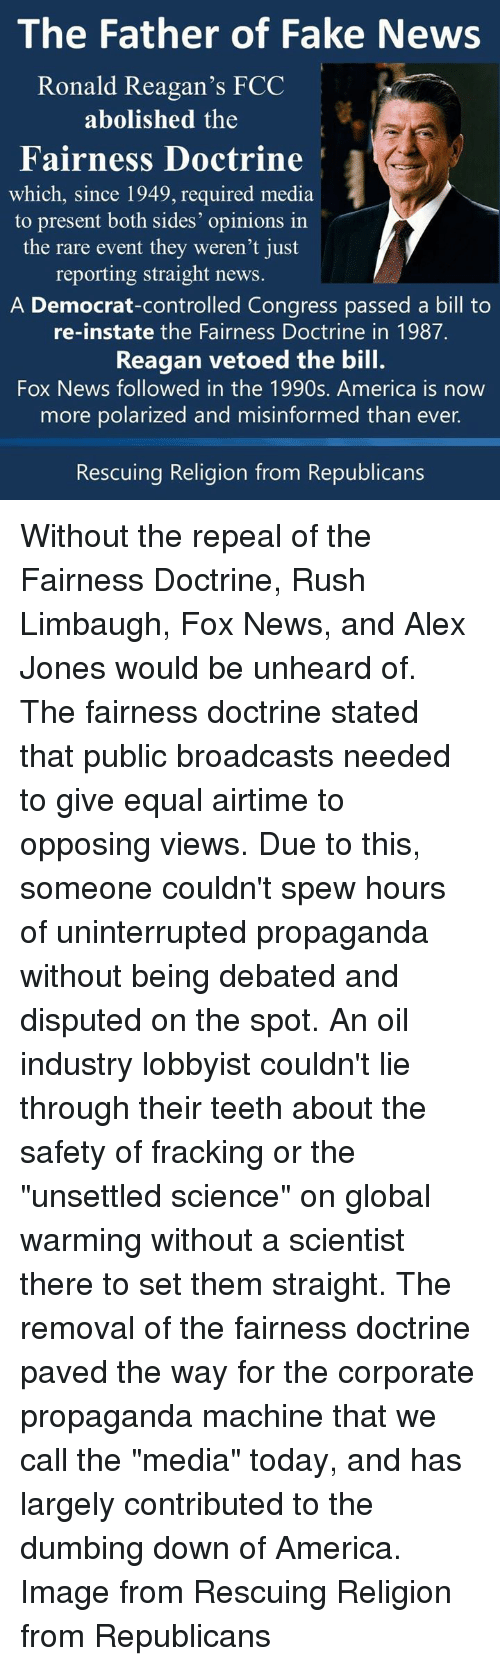 """Rush Limbaugh: The Father of Fake News  Ronald Reagan's FCC  abolished the  Fairness Doctrine  which, since 1949, required media  to present both sides' opinions in  the rare event they weren't just  reporting straight news  A Democrat-controlled Congress passed a bill to  re-instate the Fairness Doctrine in 1987.  Reagan vetoed the bill.  Fox News followed in the 1990s. America is now  more polarized and misinformed than ever.  Rescuing Religion from Republicans Without the repeal of the Fairness Doctrine, Rush Limbaugh, Fox News, and Alex Jones would be unheard of.  The fairness doctrine stated that public broadcasts needed to give equal airtime to opposing views.  Due to this, someone couldn't spew hours of uninterrupted propaganda without being debated and disputed on the spot.   An oil industry lobbyist couldn't lie through their teeth about the safety of fracking or the """"unsettled science"""" on global warming without a scientist there to set them straight.  The removal of the fairness doctrine paved the way for the corporate propaganda machine that we call the """"media"""" today, and has largely contributed to the dumbing down of America.   Image from Rescuing Religion from Republicans"""